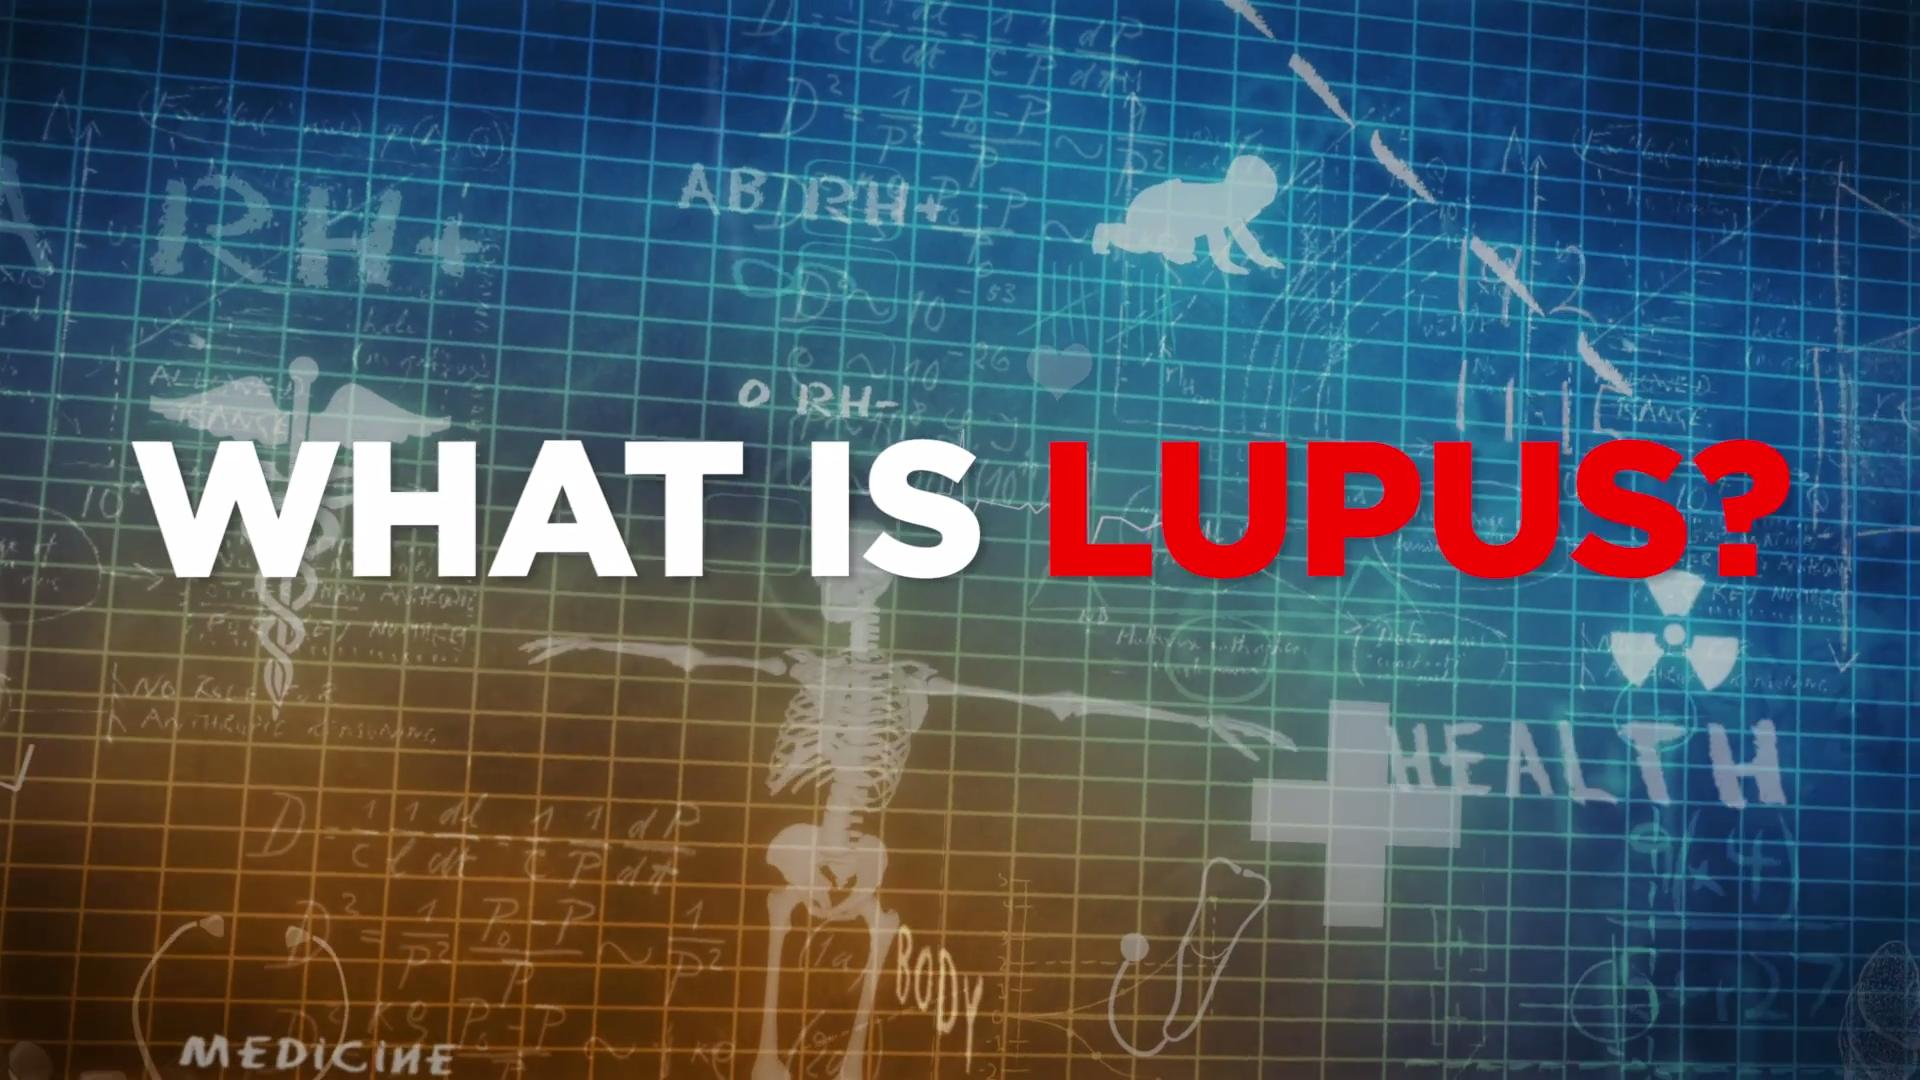 You have lupus.